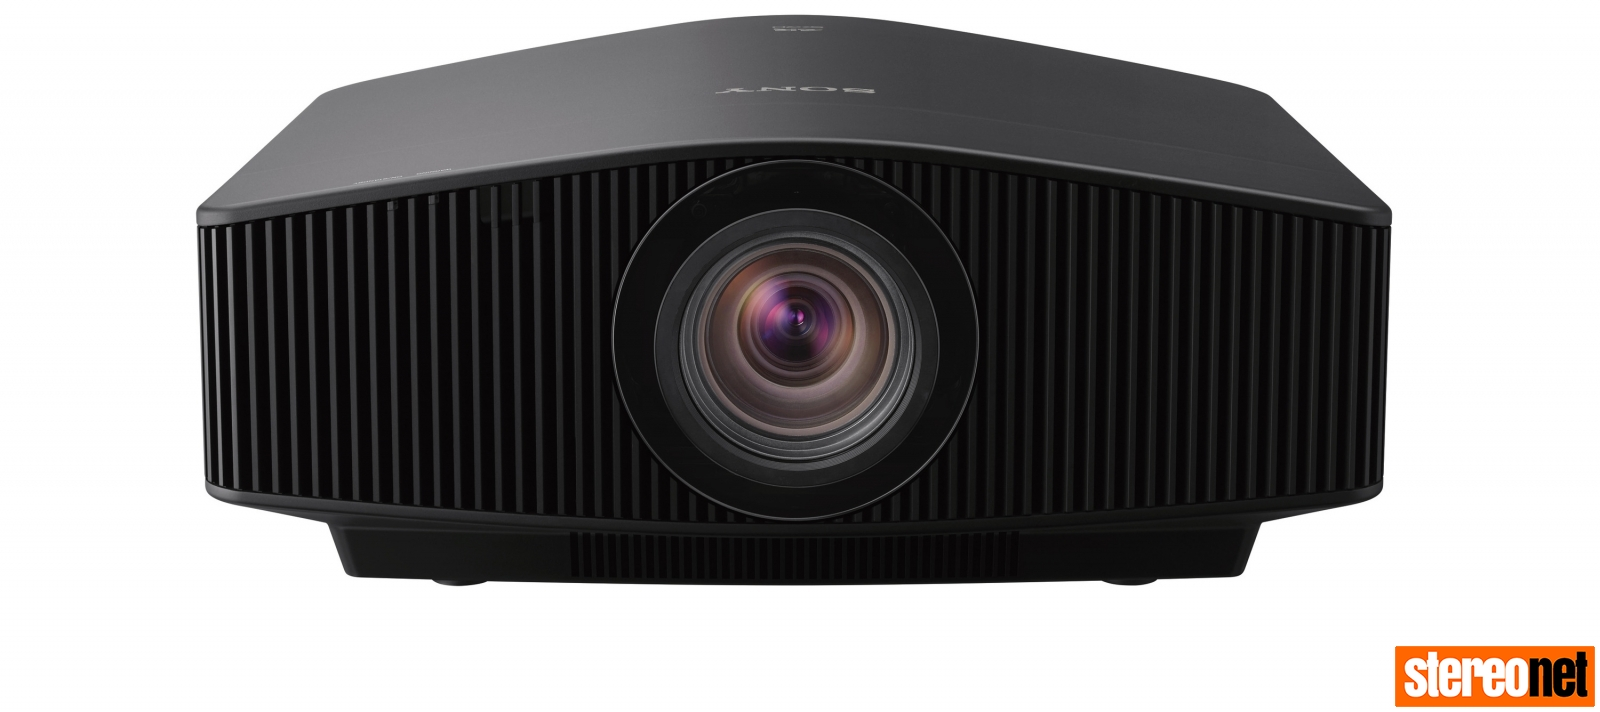 Your Sony Native 4k Laser Projector Experience Invitation